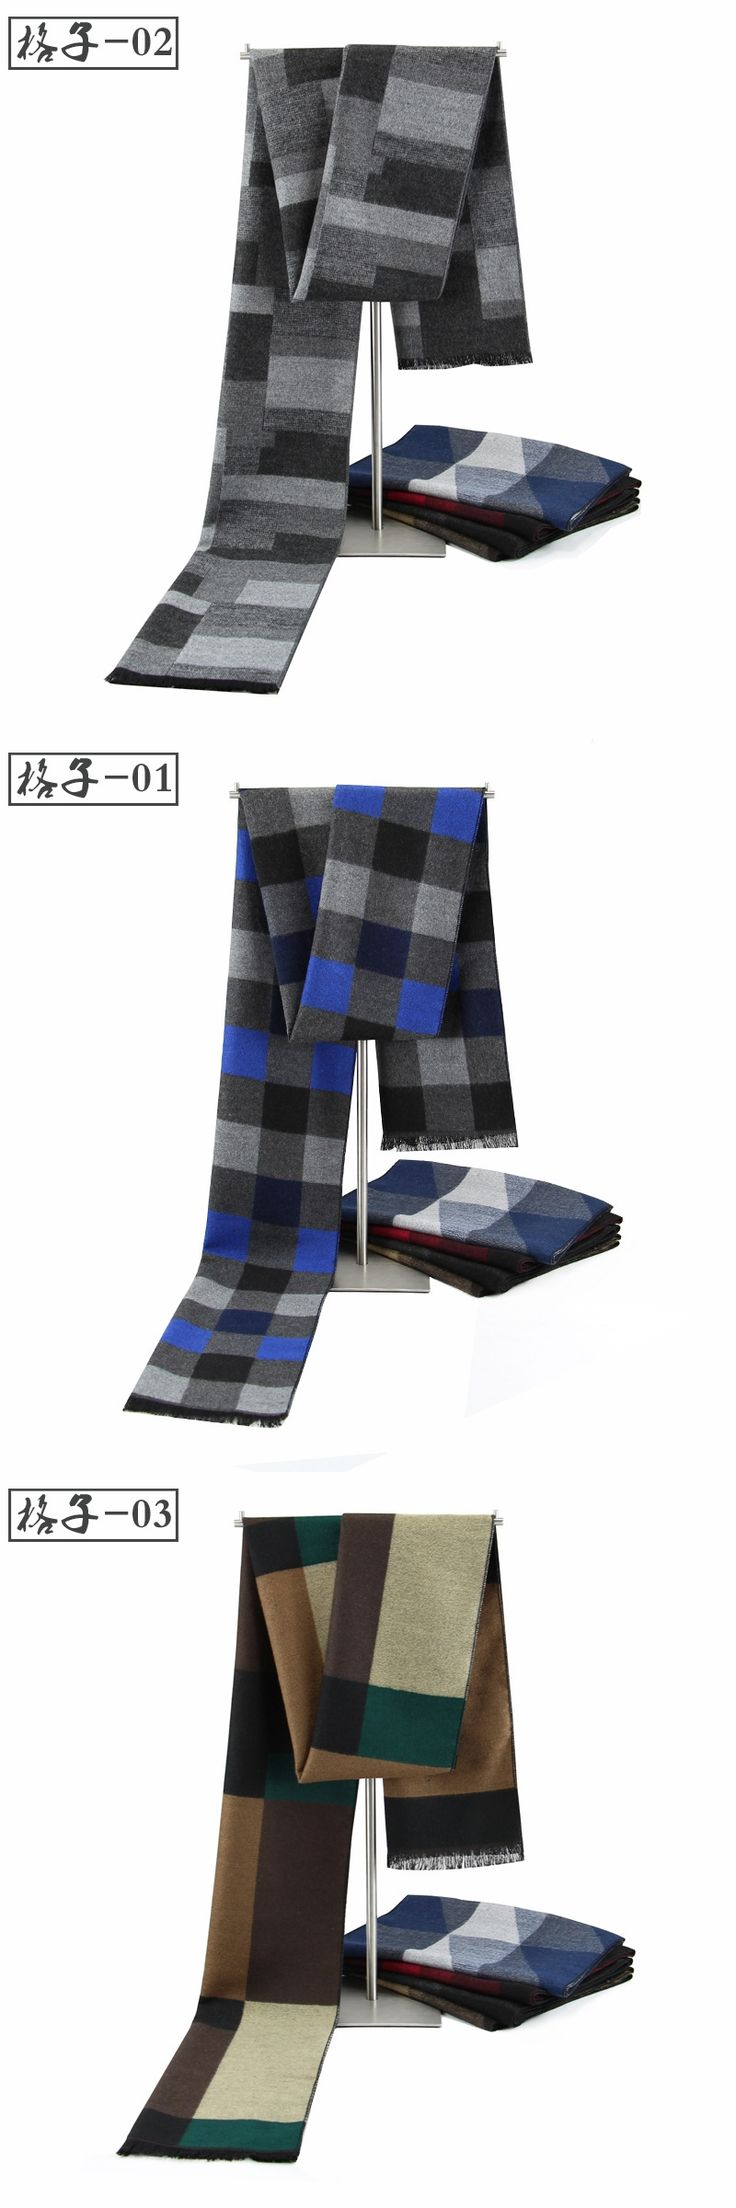 Men's Cashmere Scarf Korean Winter Plaid Scarf Jacquard Knitted Stitching Winter Warm Wear Business Man Scarves B-5896